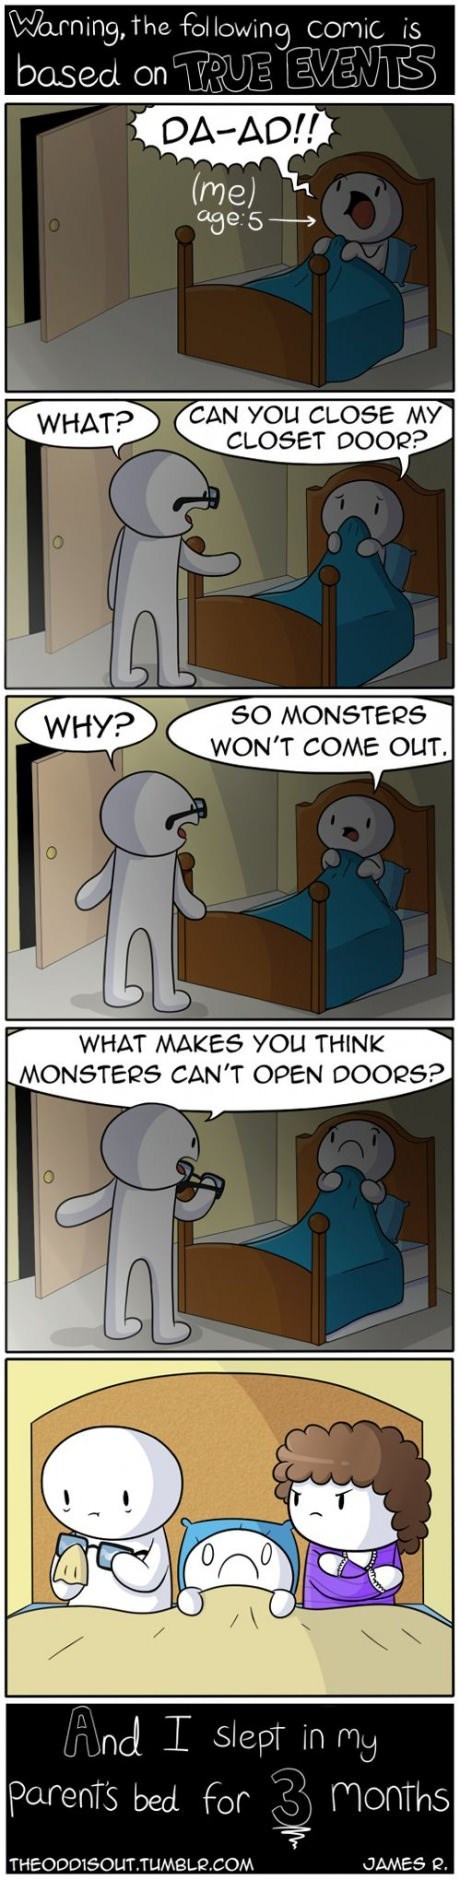 kids monster parenting web comics - 8236413440